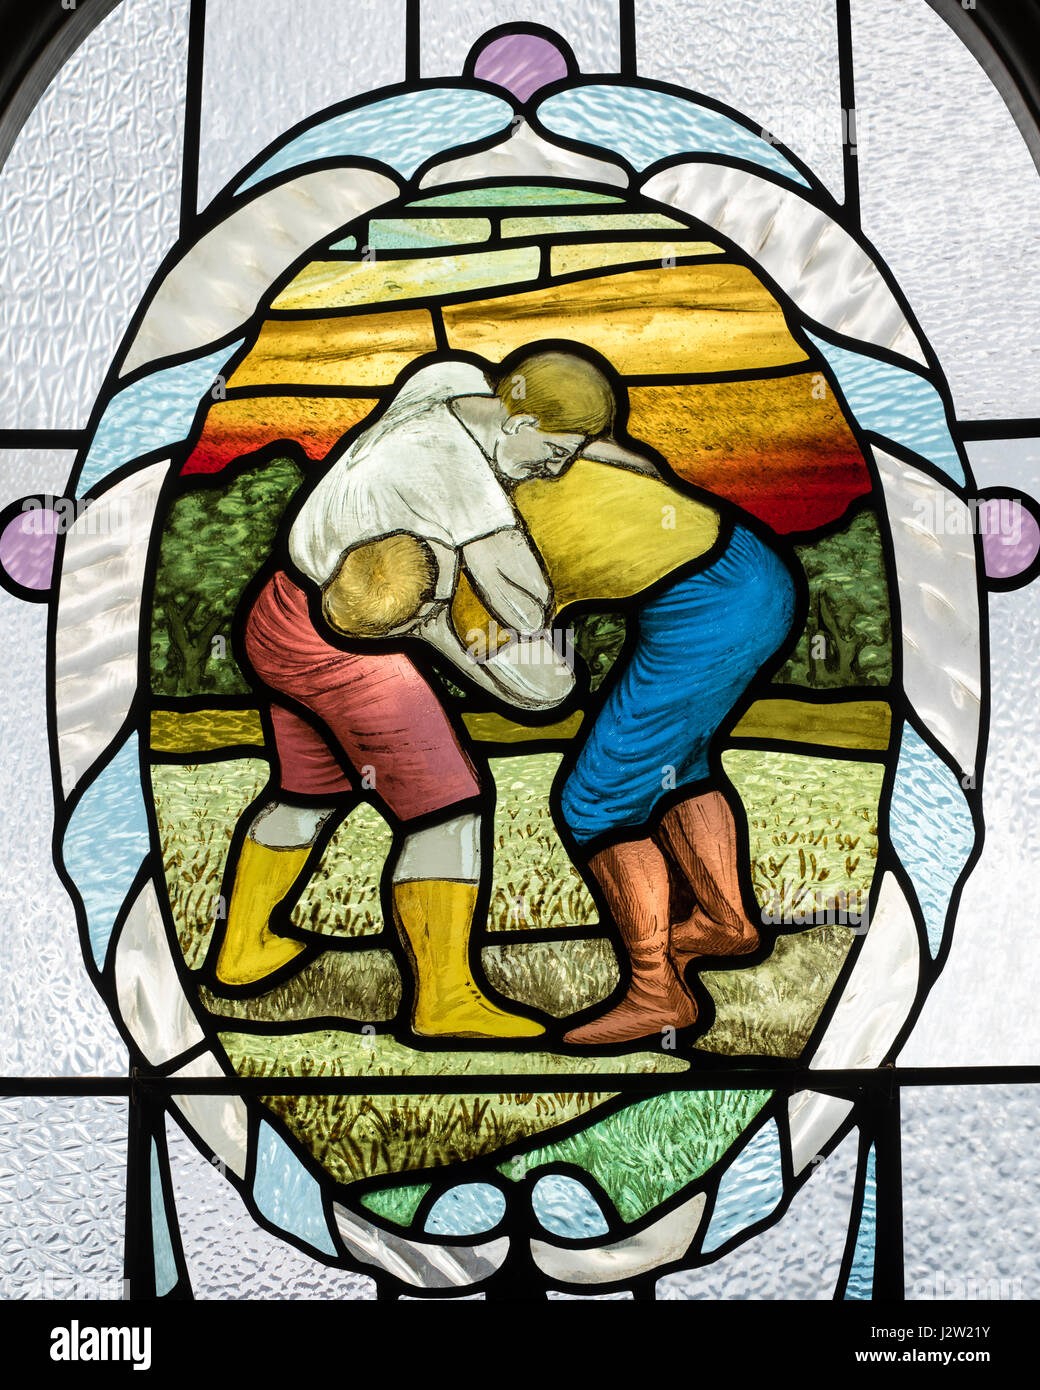 Wrestlers, from the Edwardian era, depicted in a stained glass window, Victoria Baths, Manchester, England - Stock Image